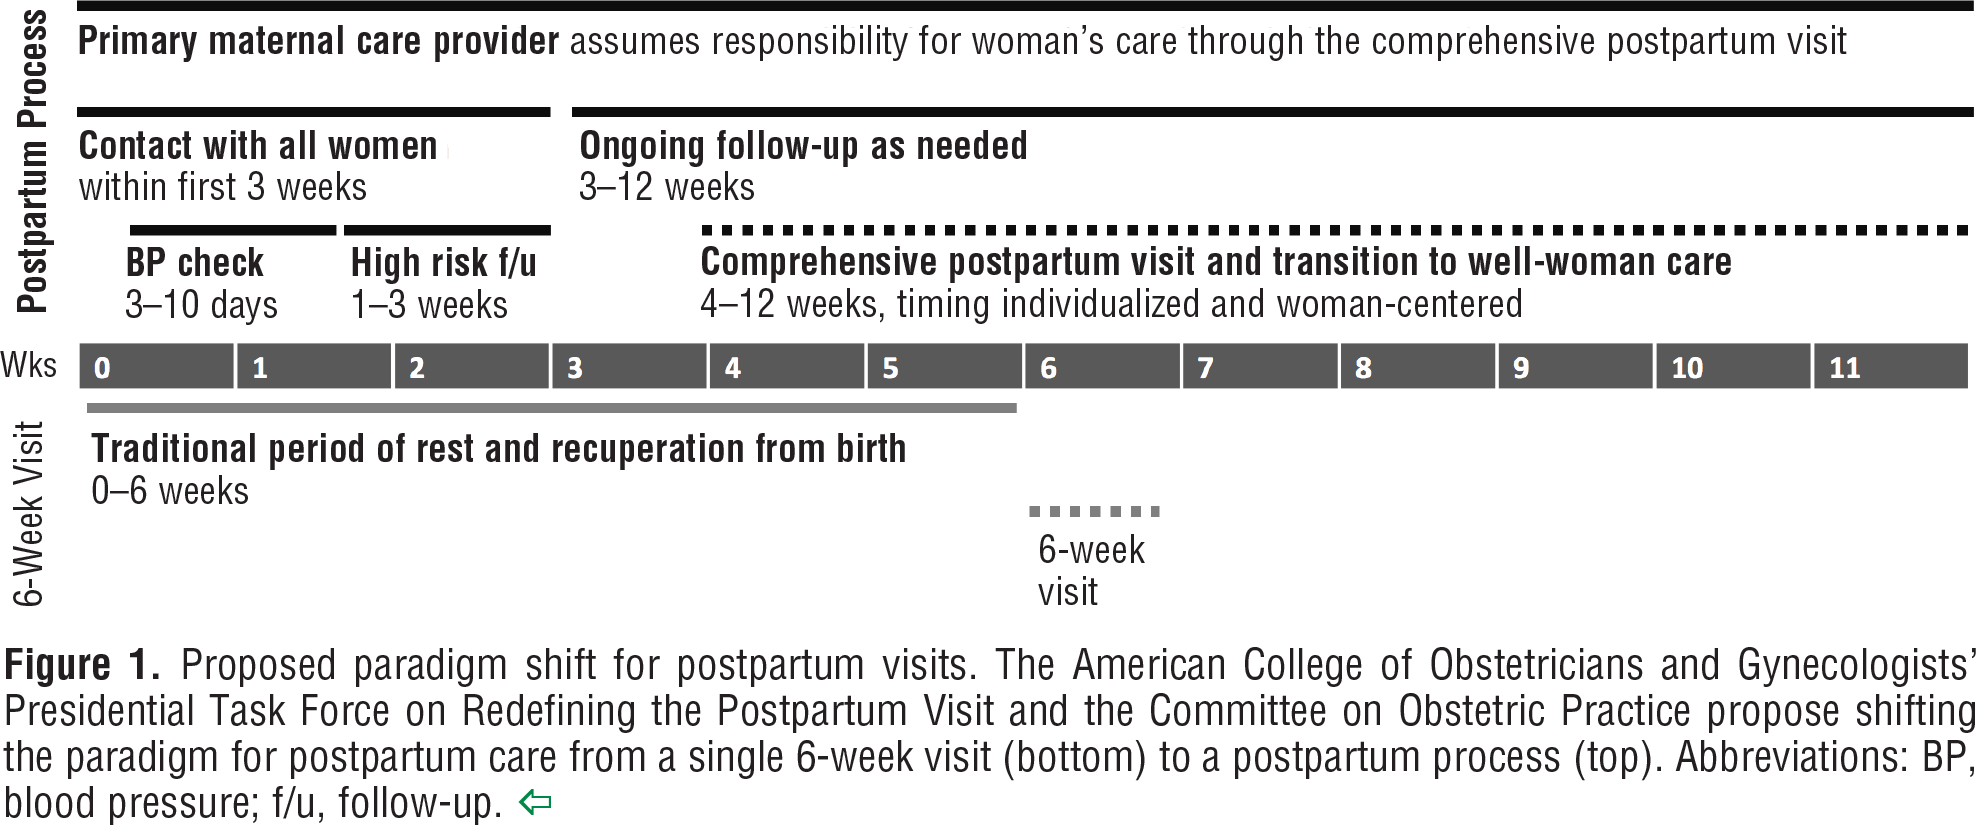 Figure 1. Proposed paradigm shift for postpartum visits. The American College of Obstetricians and Gynecologists' Presidential Task Force on Redefining the Postpartum Visit and the Committee on Obstetric Practice propose shifting the paradigm for postpartum care from a single 6-week visit (bottom) to a postpartum process (top). Abbreviations: BP, blood pressure; f/u, follow-up.